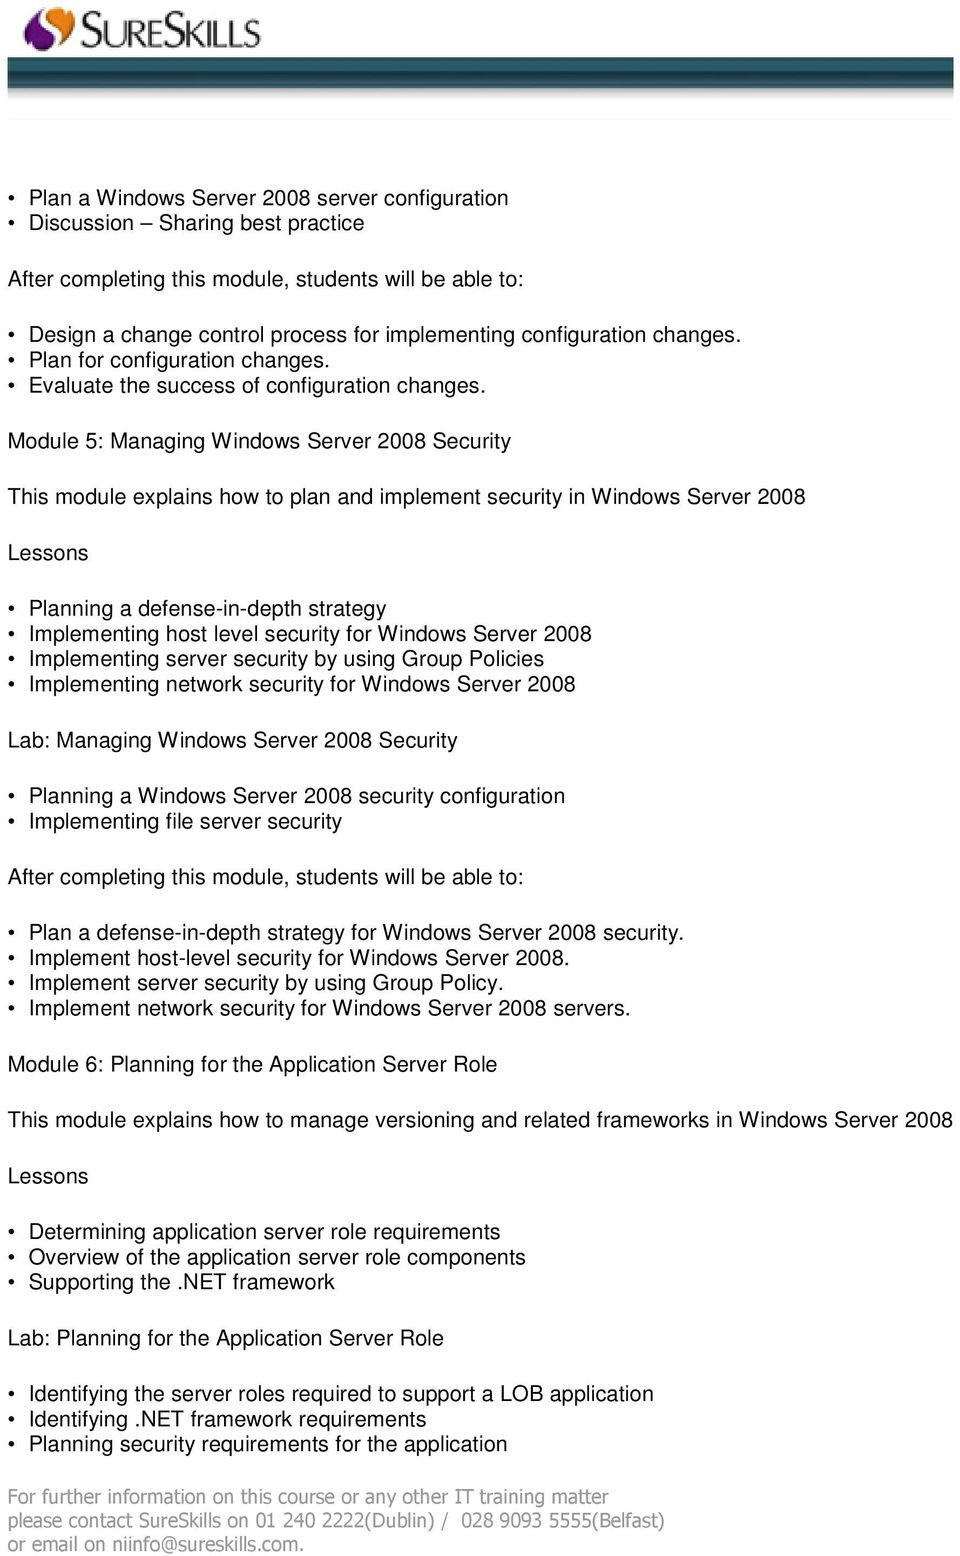 Module 5: Managing Windows Server 2008 Security This module explains how to plan and implement security in Windows Server 2008 Planning a defense-in-depth strategy Implementing host level security